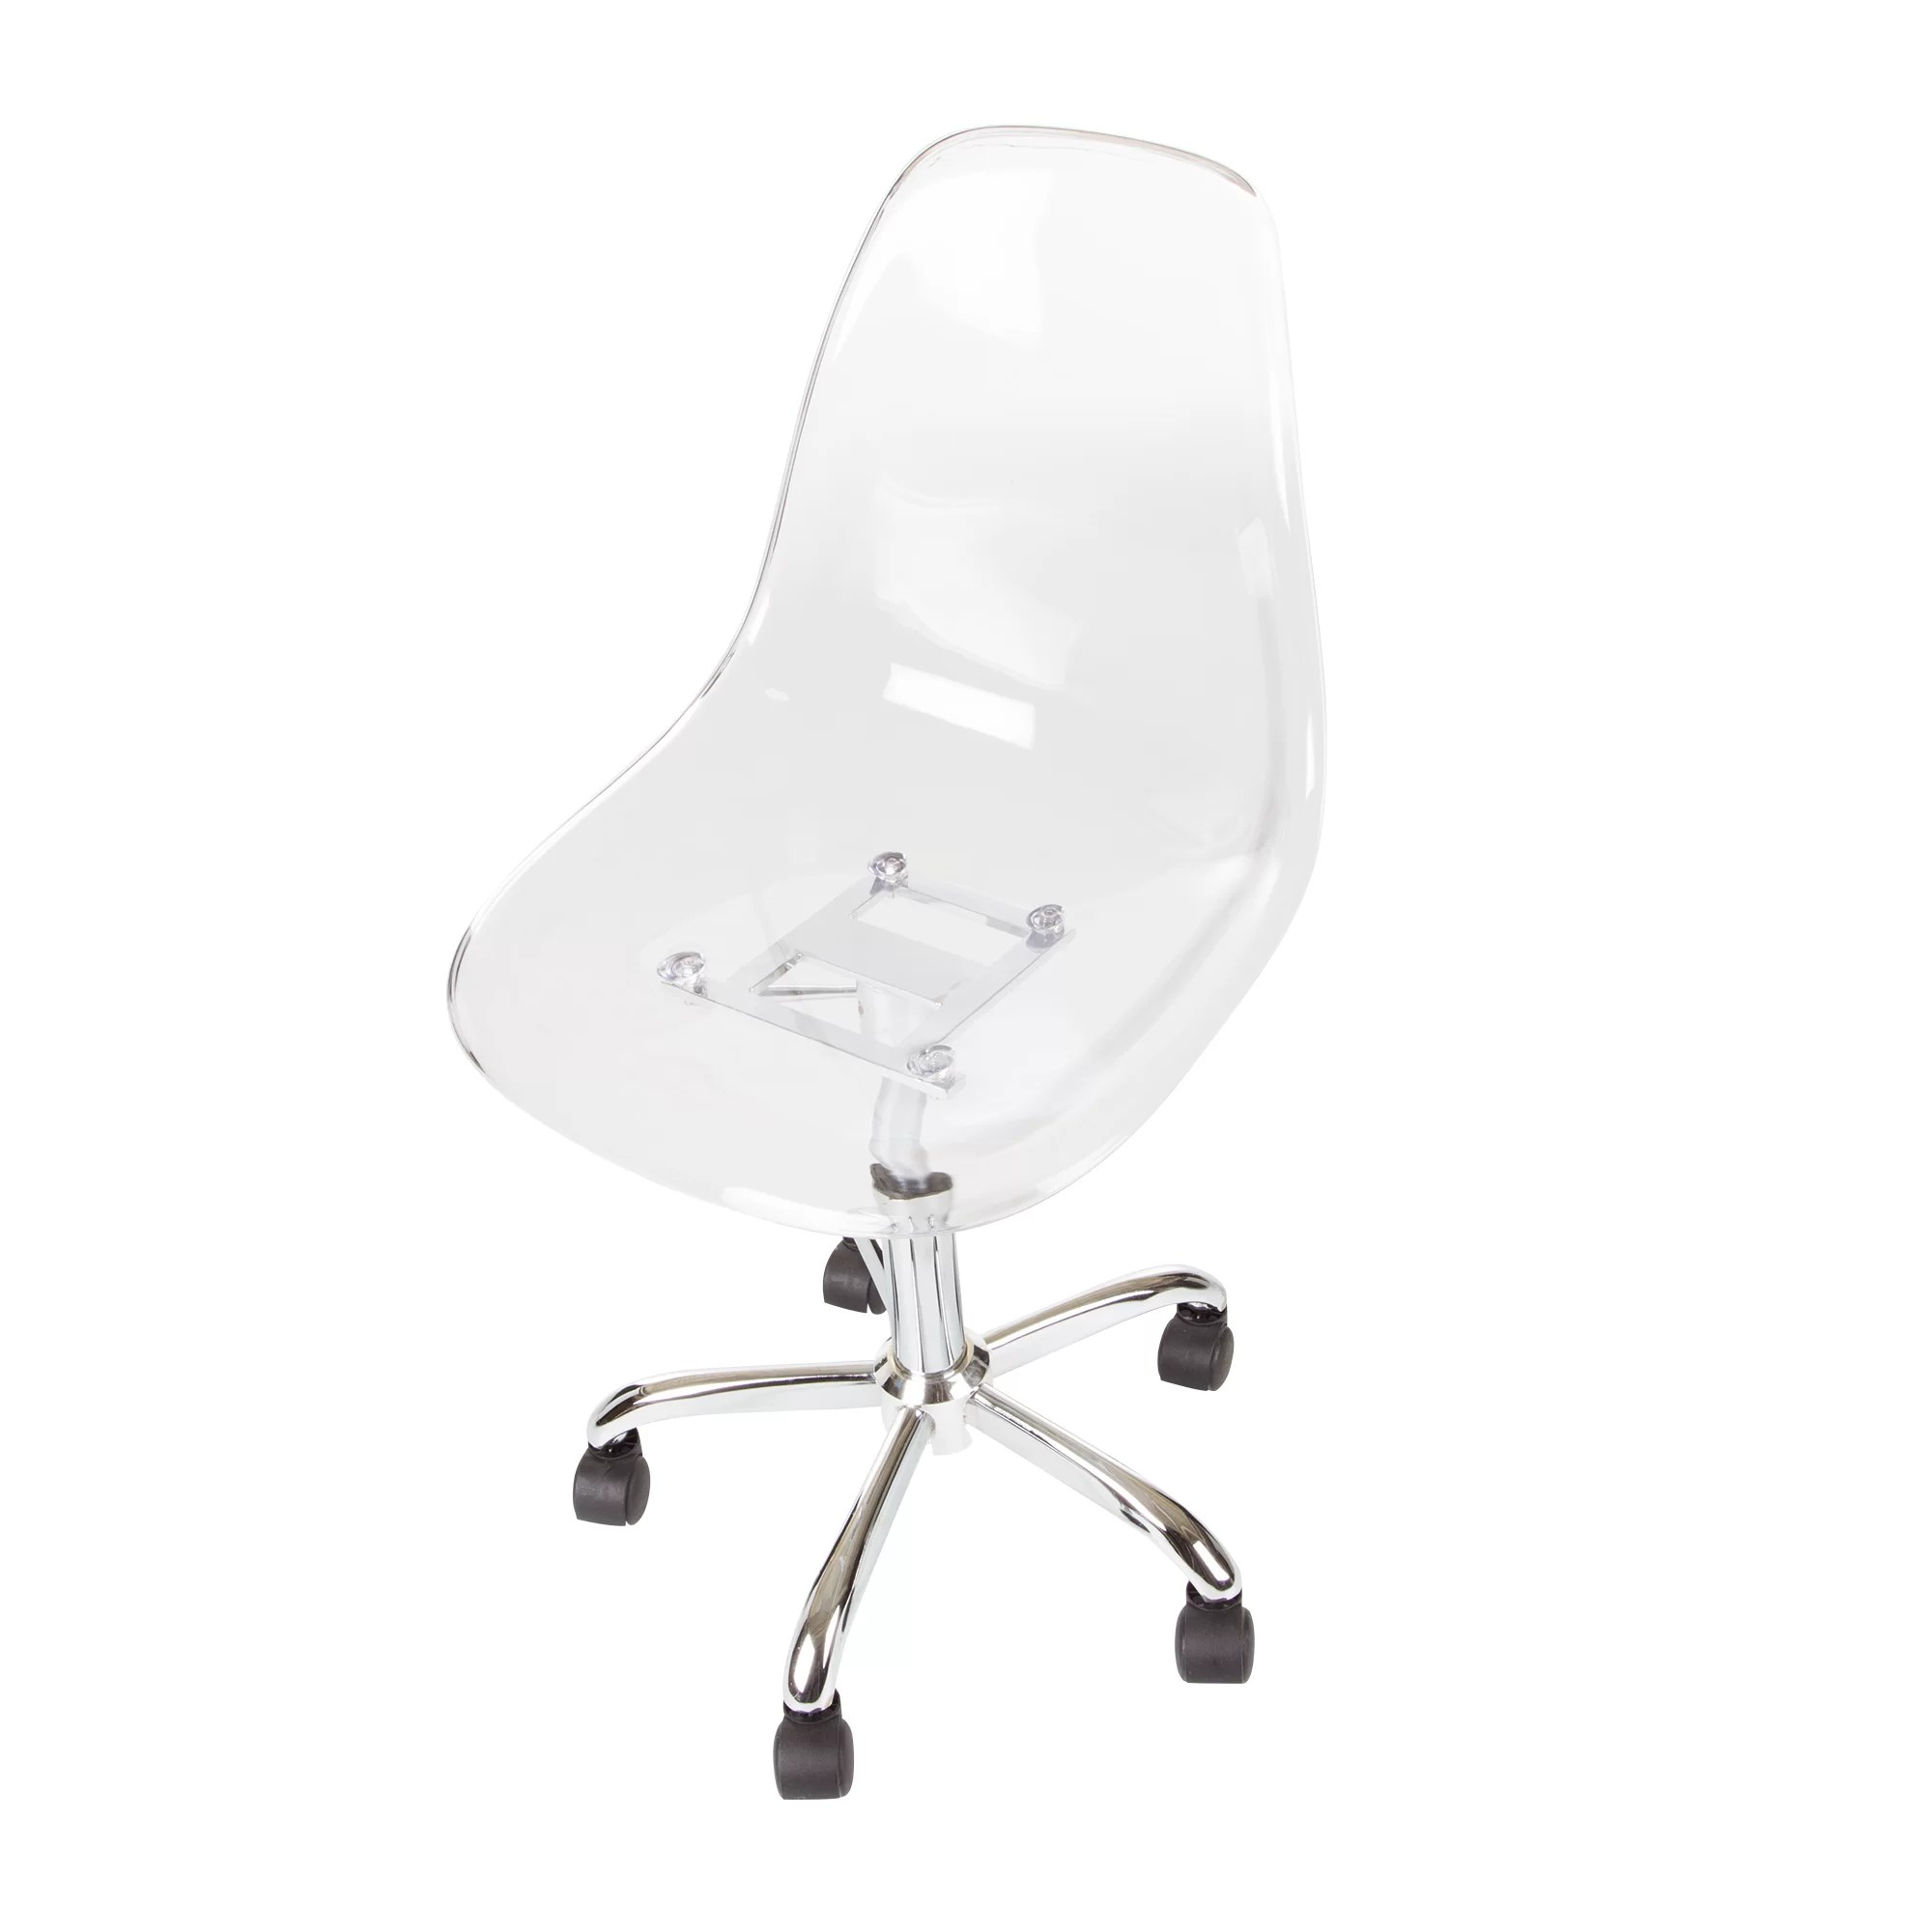 Clear Acrylic Chair South Shore Acrylic Office Chair And Reviews Wayfair